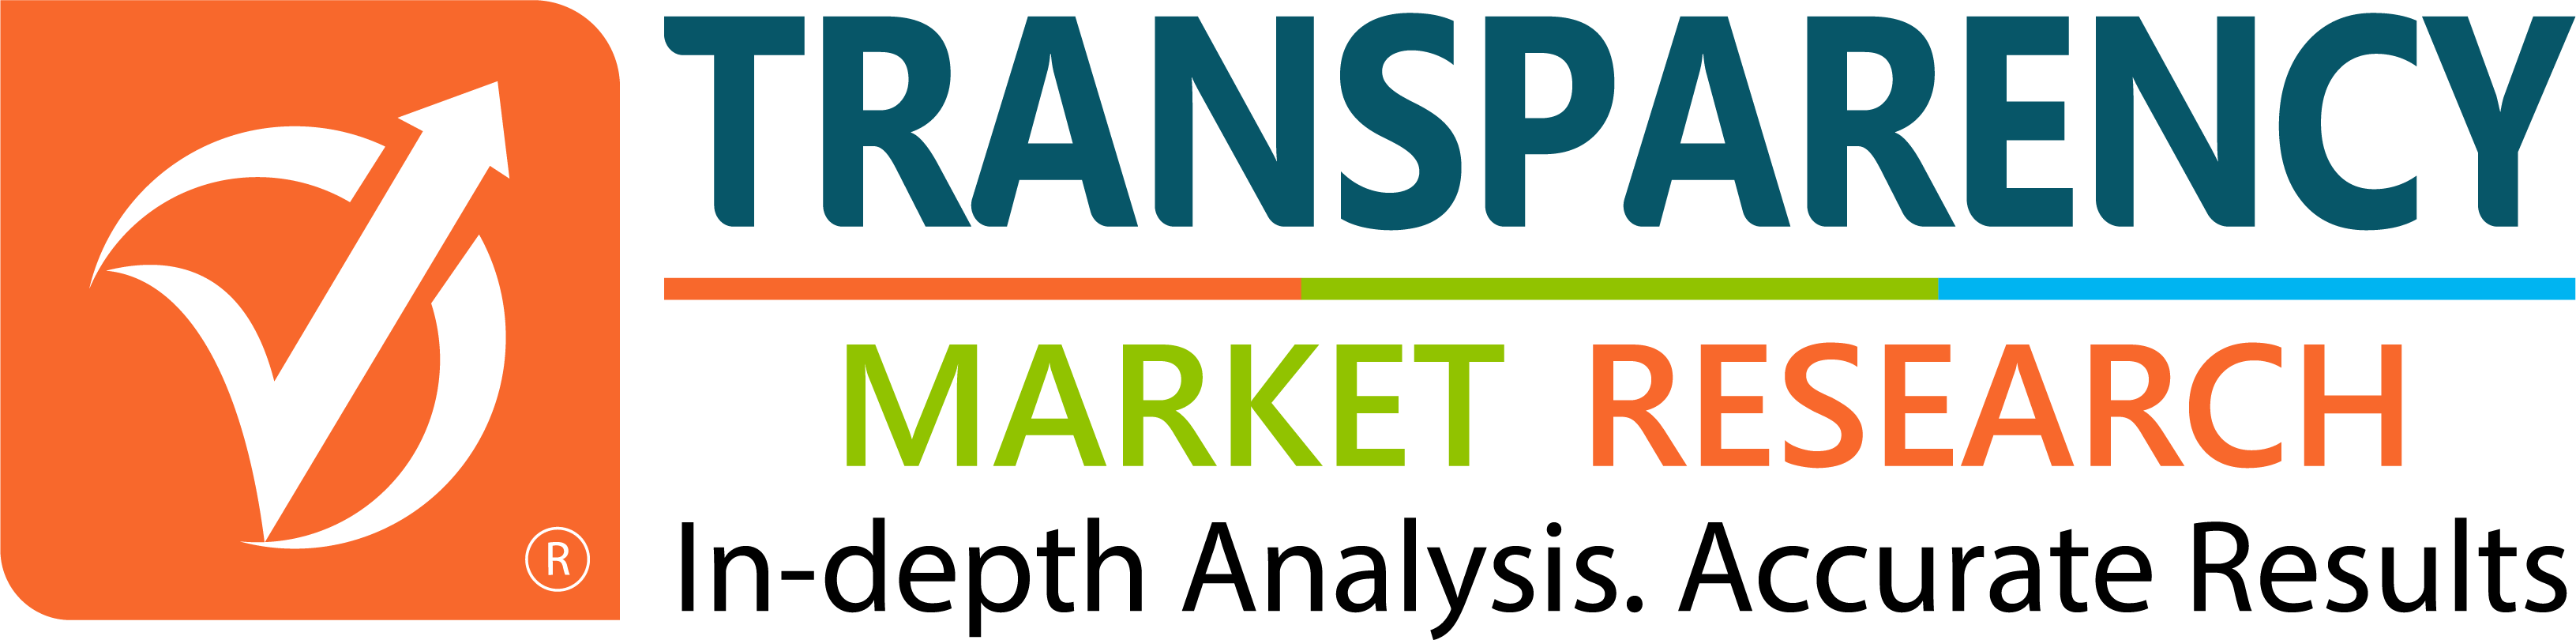 Wellness Tourism Market Segmentation and Analysis by Latest Trends and Growth by Regional Forecast, 2026